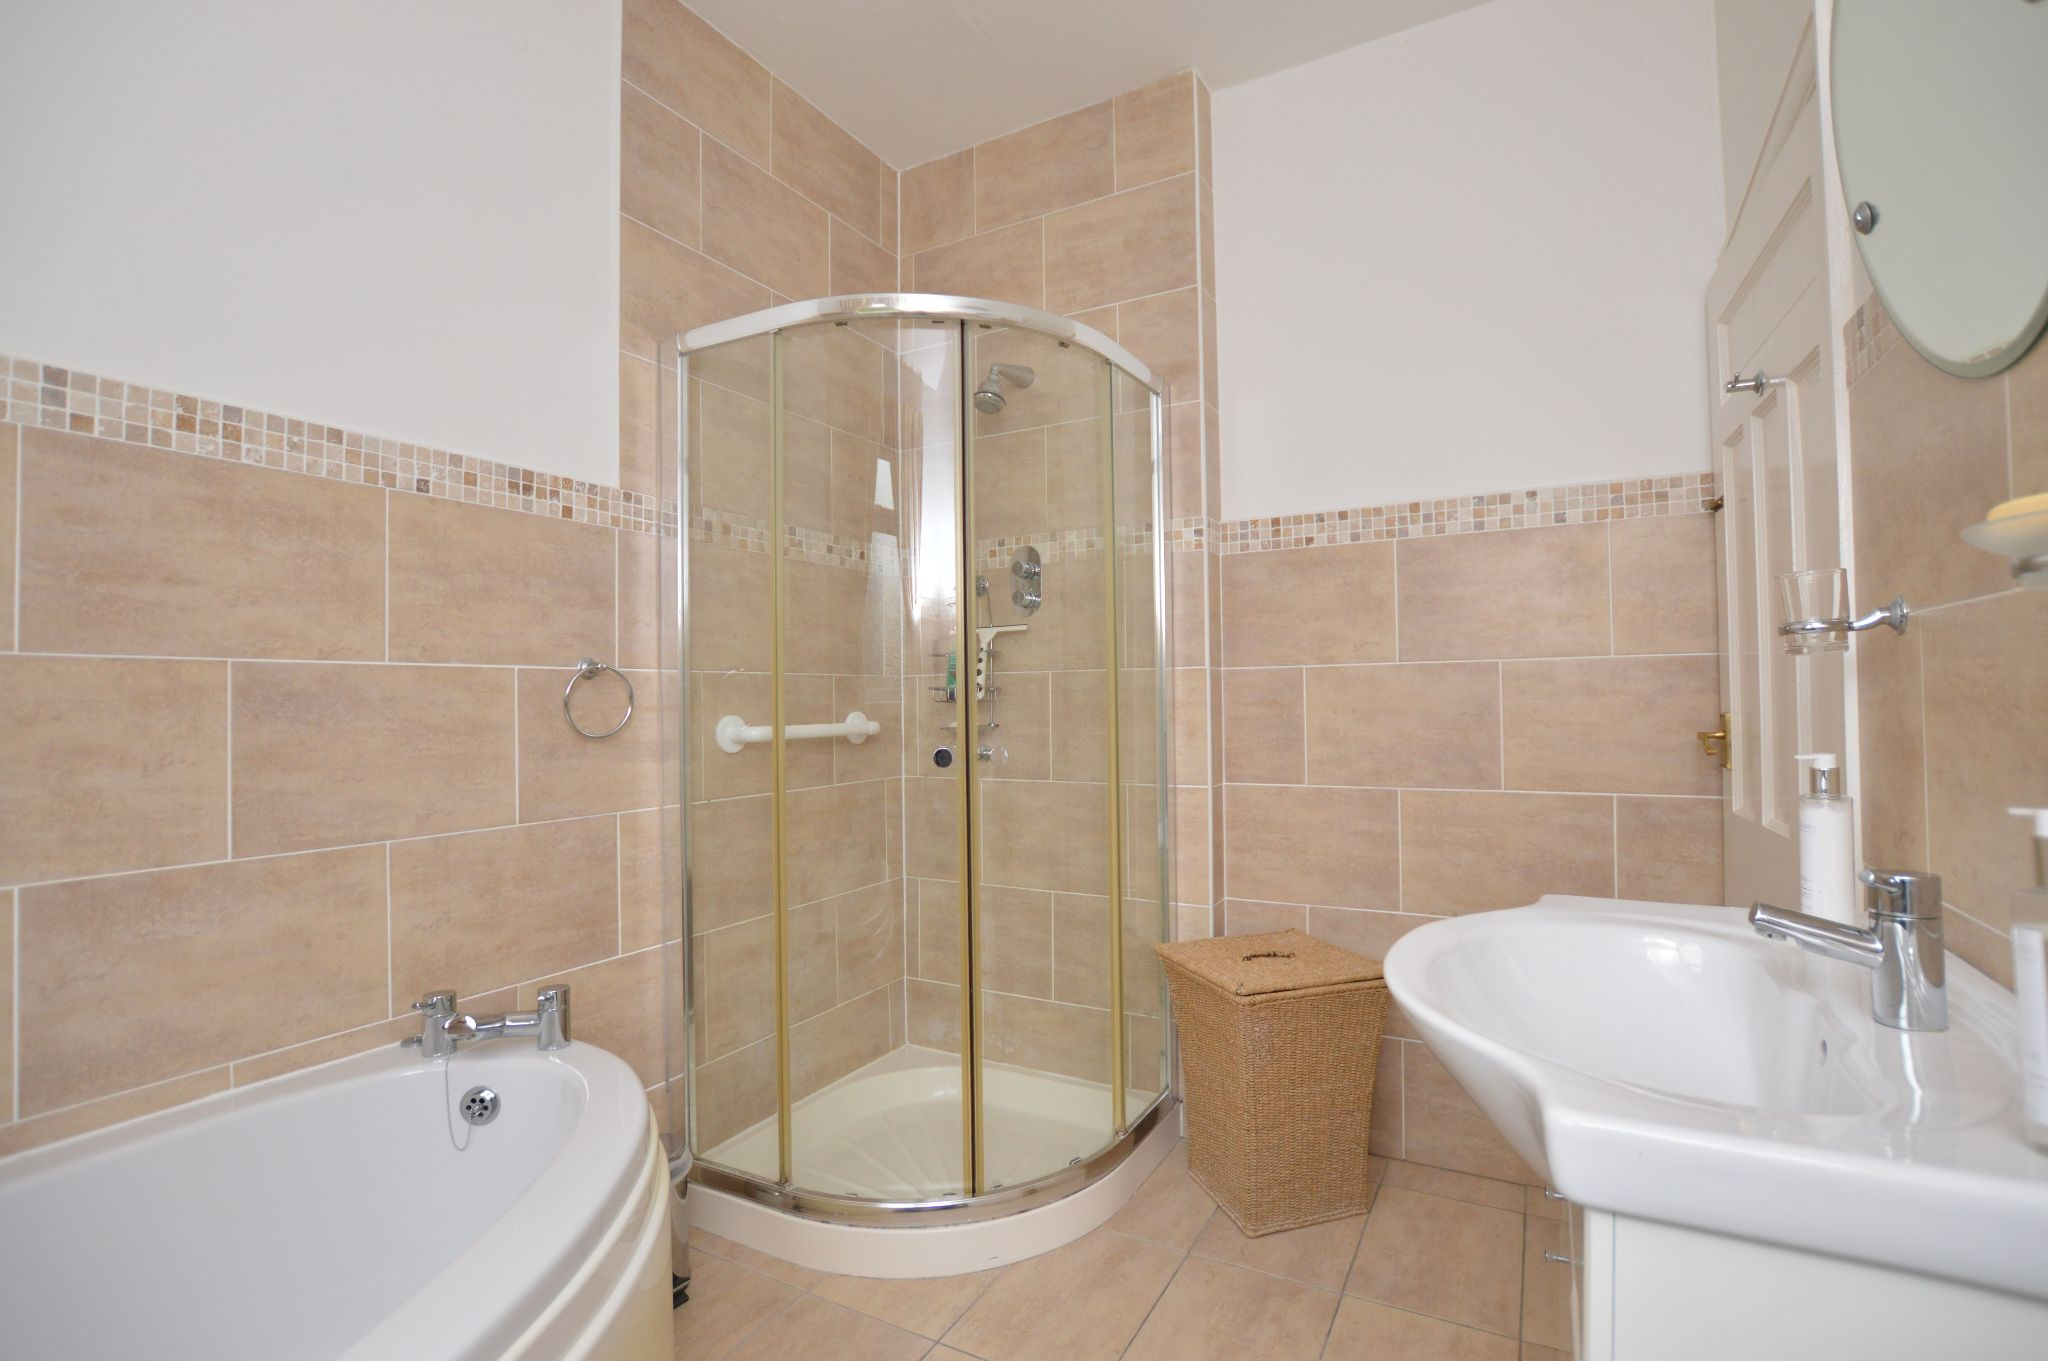 4 bedroom detached bungalow For Sale in Abergele - GF Bathroom View 2